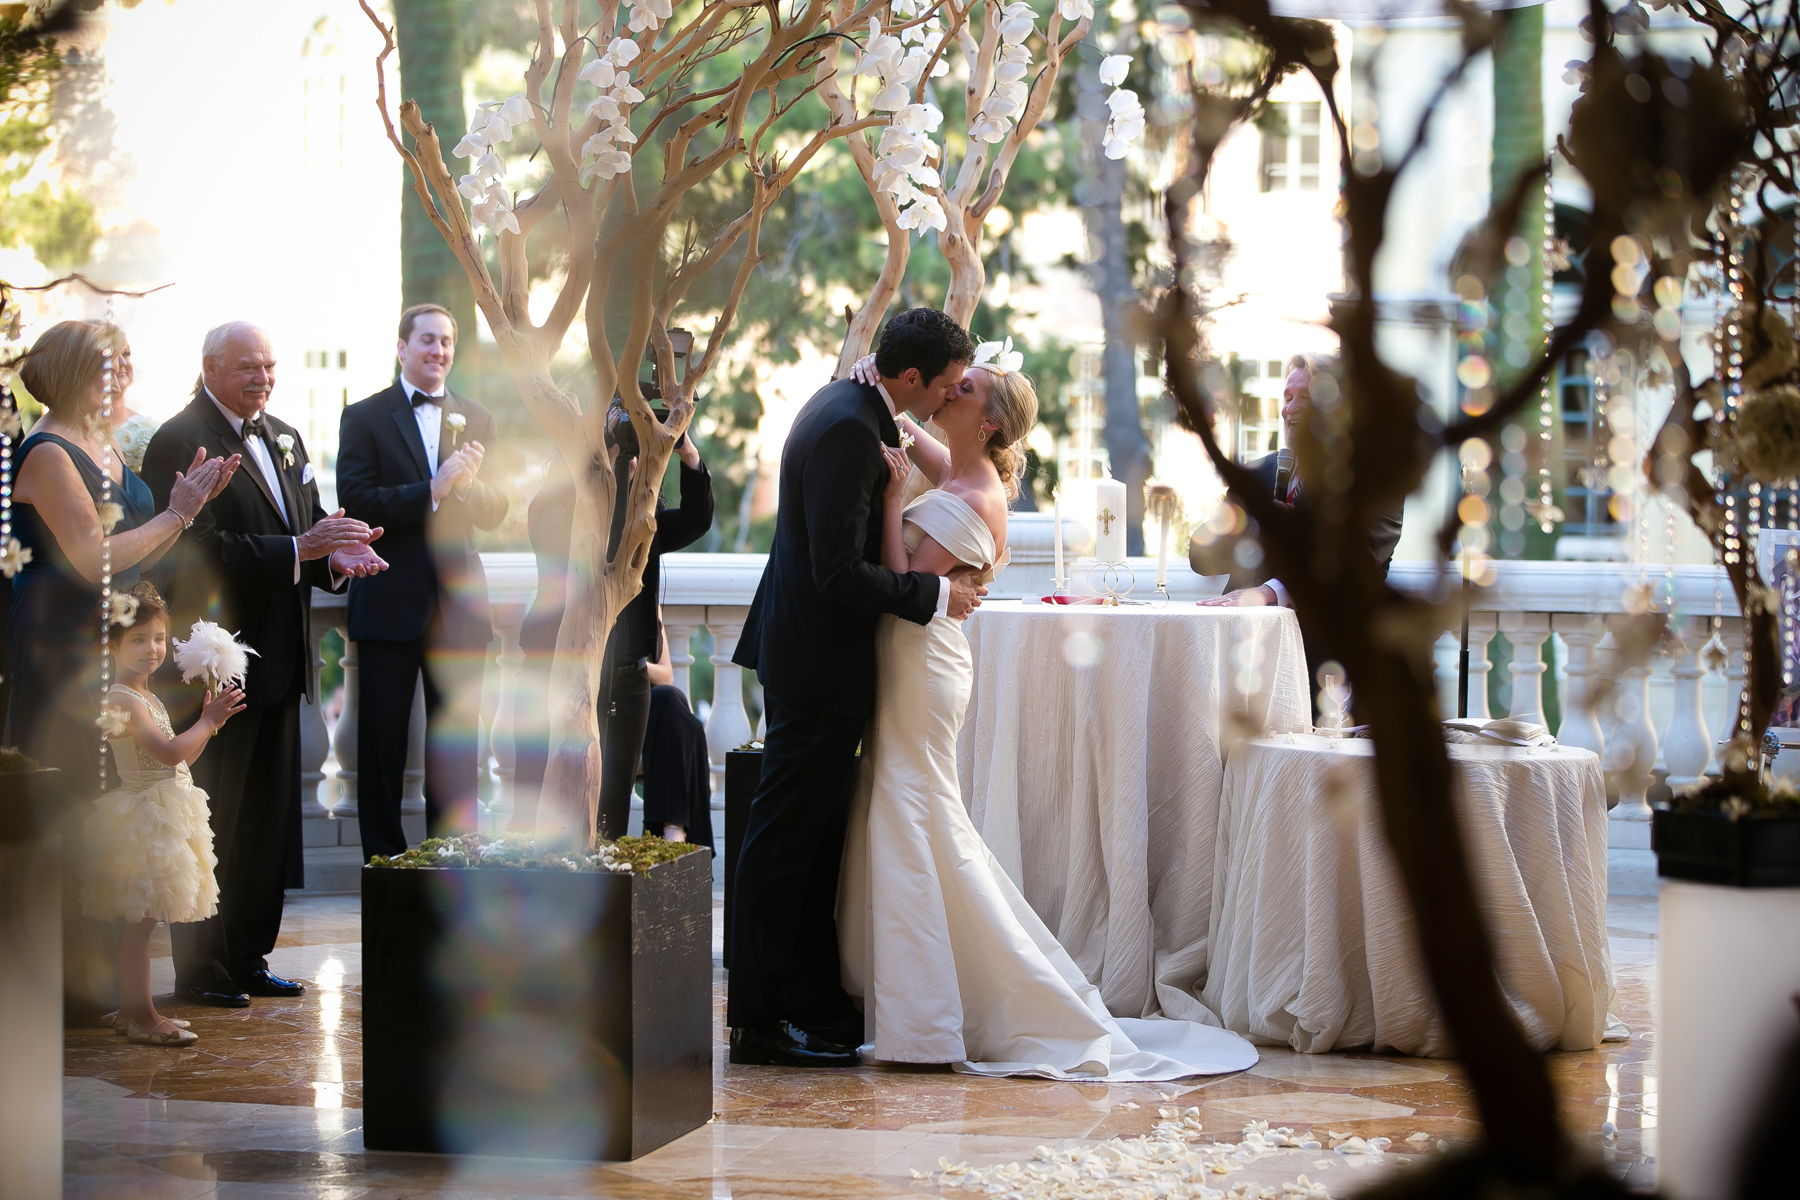 The last first kiss....  Wedding Venue: Bellagio Las Vegas.  Location: The Grand Patio. Flowers & Decor by Naakiti Floral . Photo by www.ronmiller.com . Las Vegas Wedding Planner: Andrea Eppolito Events .